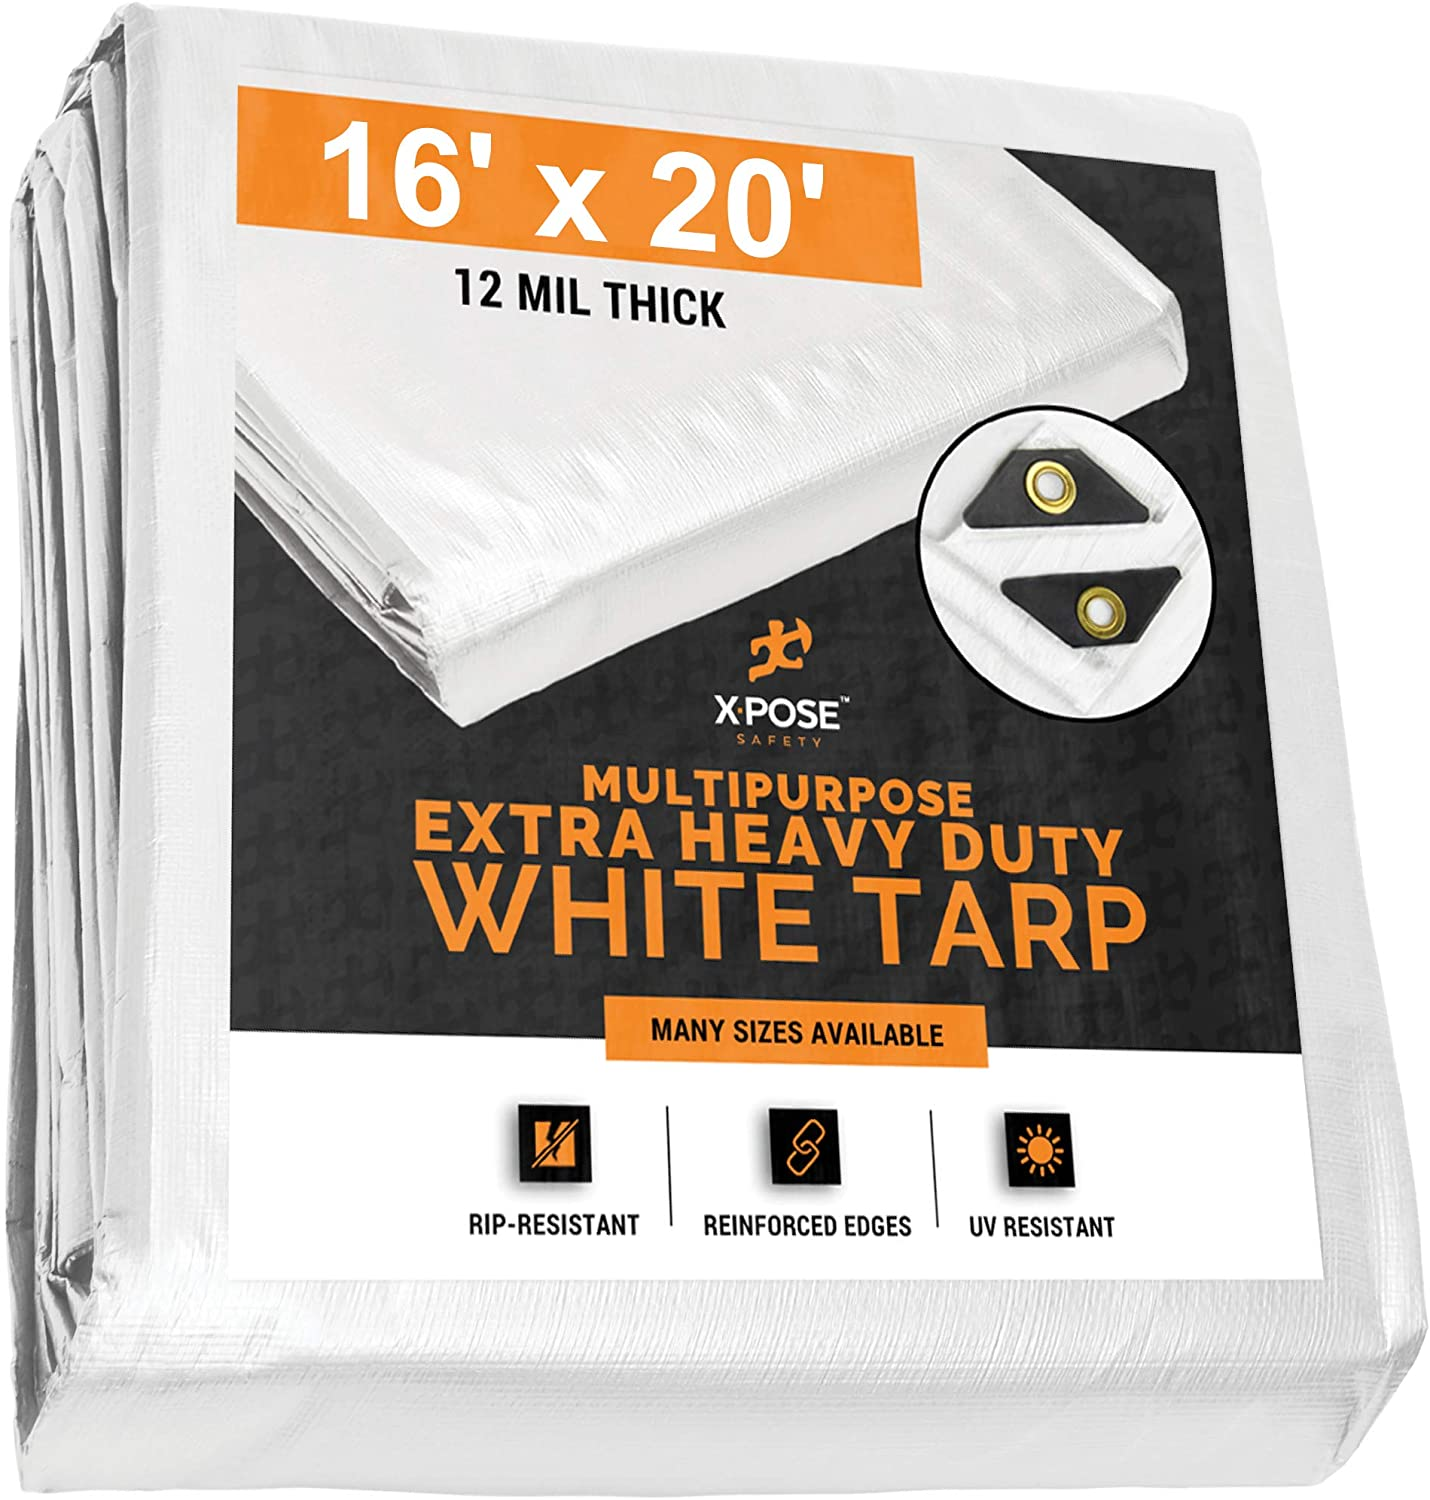 Heavy Duty White Poly Tarp 16' x 20' Multipurpose Protective Cover - Durable, Waterproof, Weather Proof, Rip and Tear Resistant - Extra Thick 12 Mil Polyethylene - by Xpose Safety